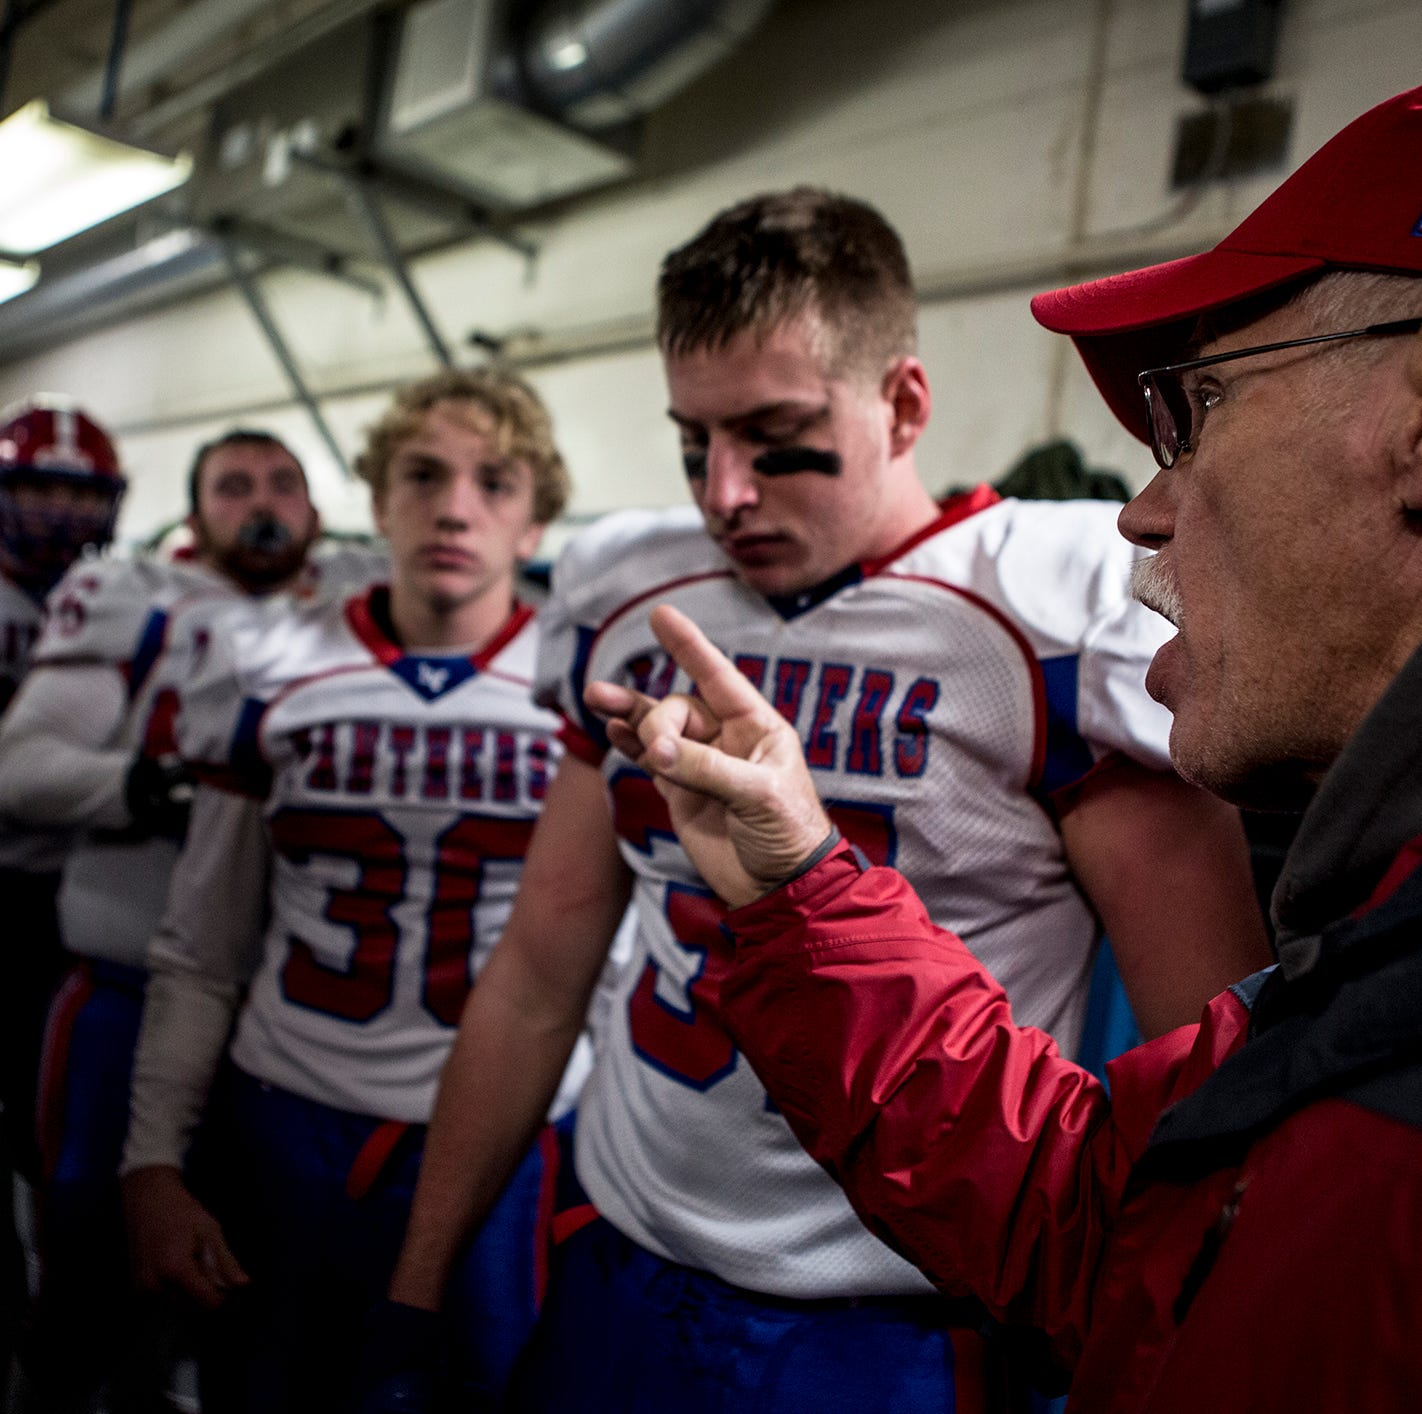 Baughman's focus, passion still driving Licking Valley